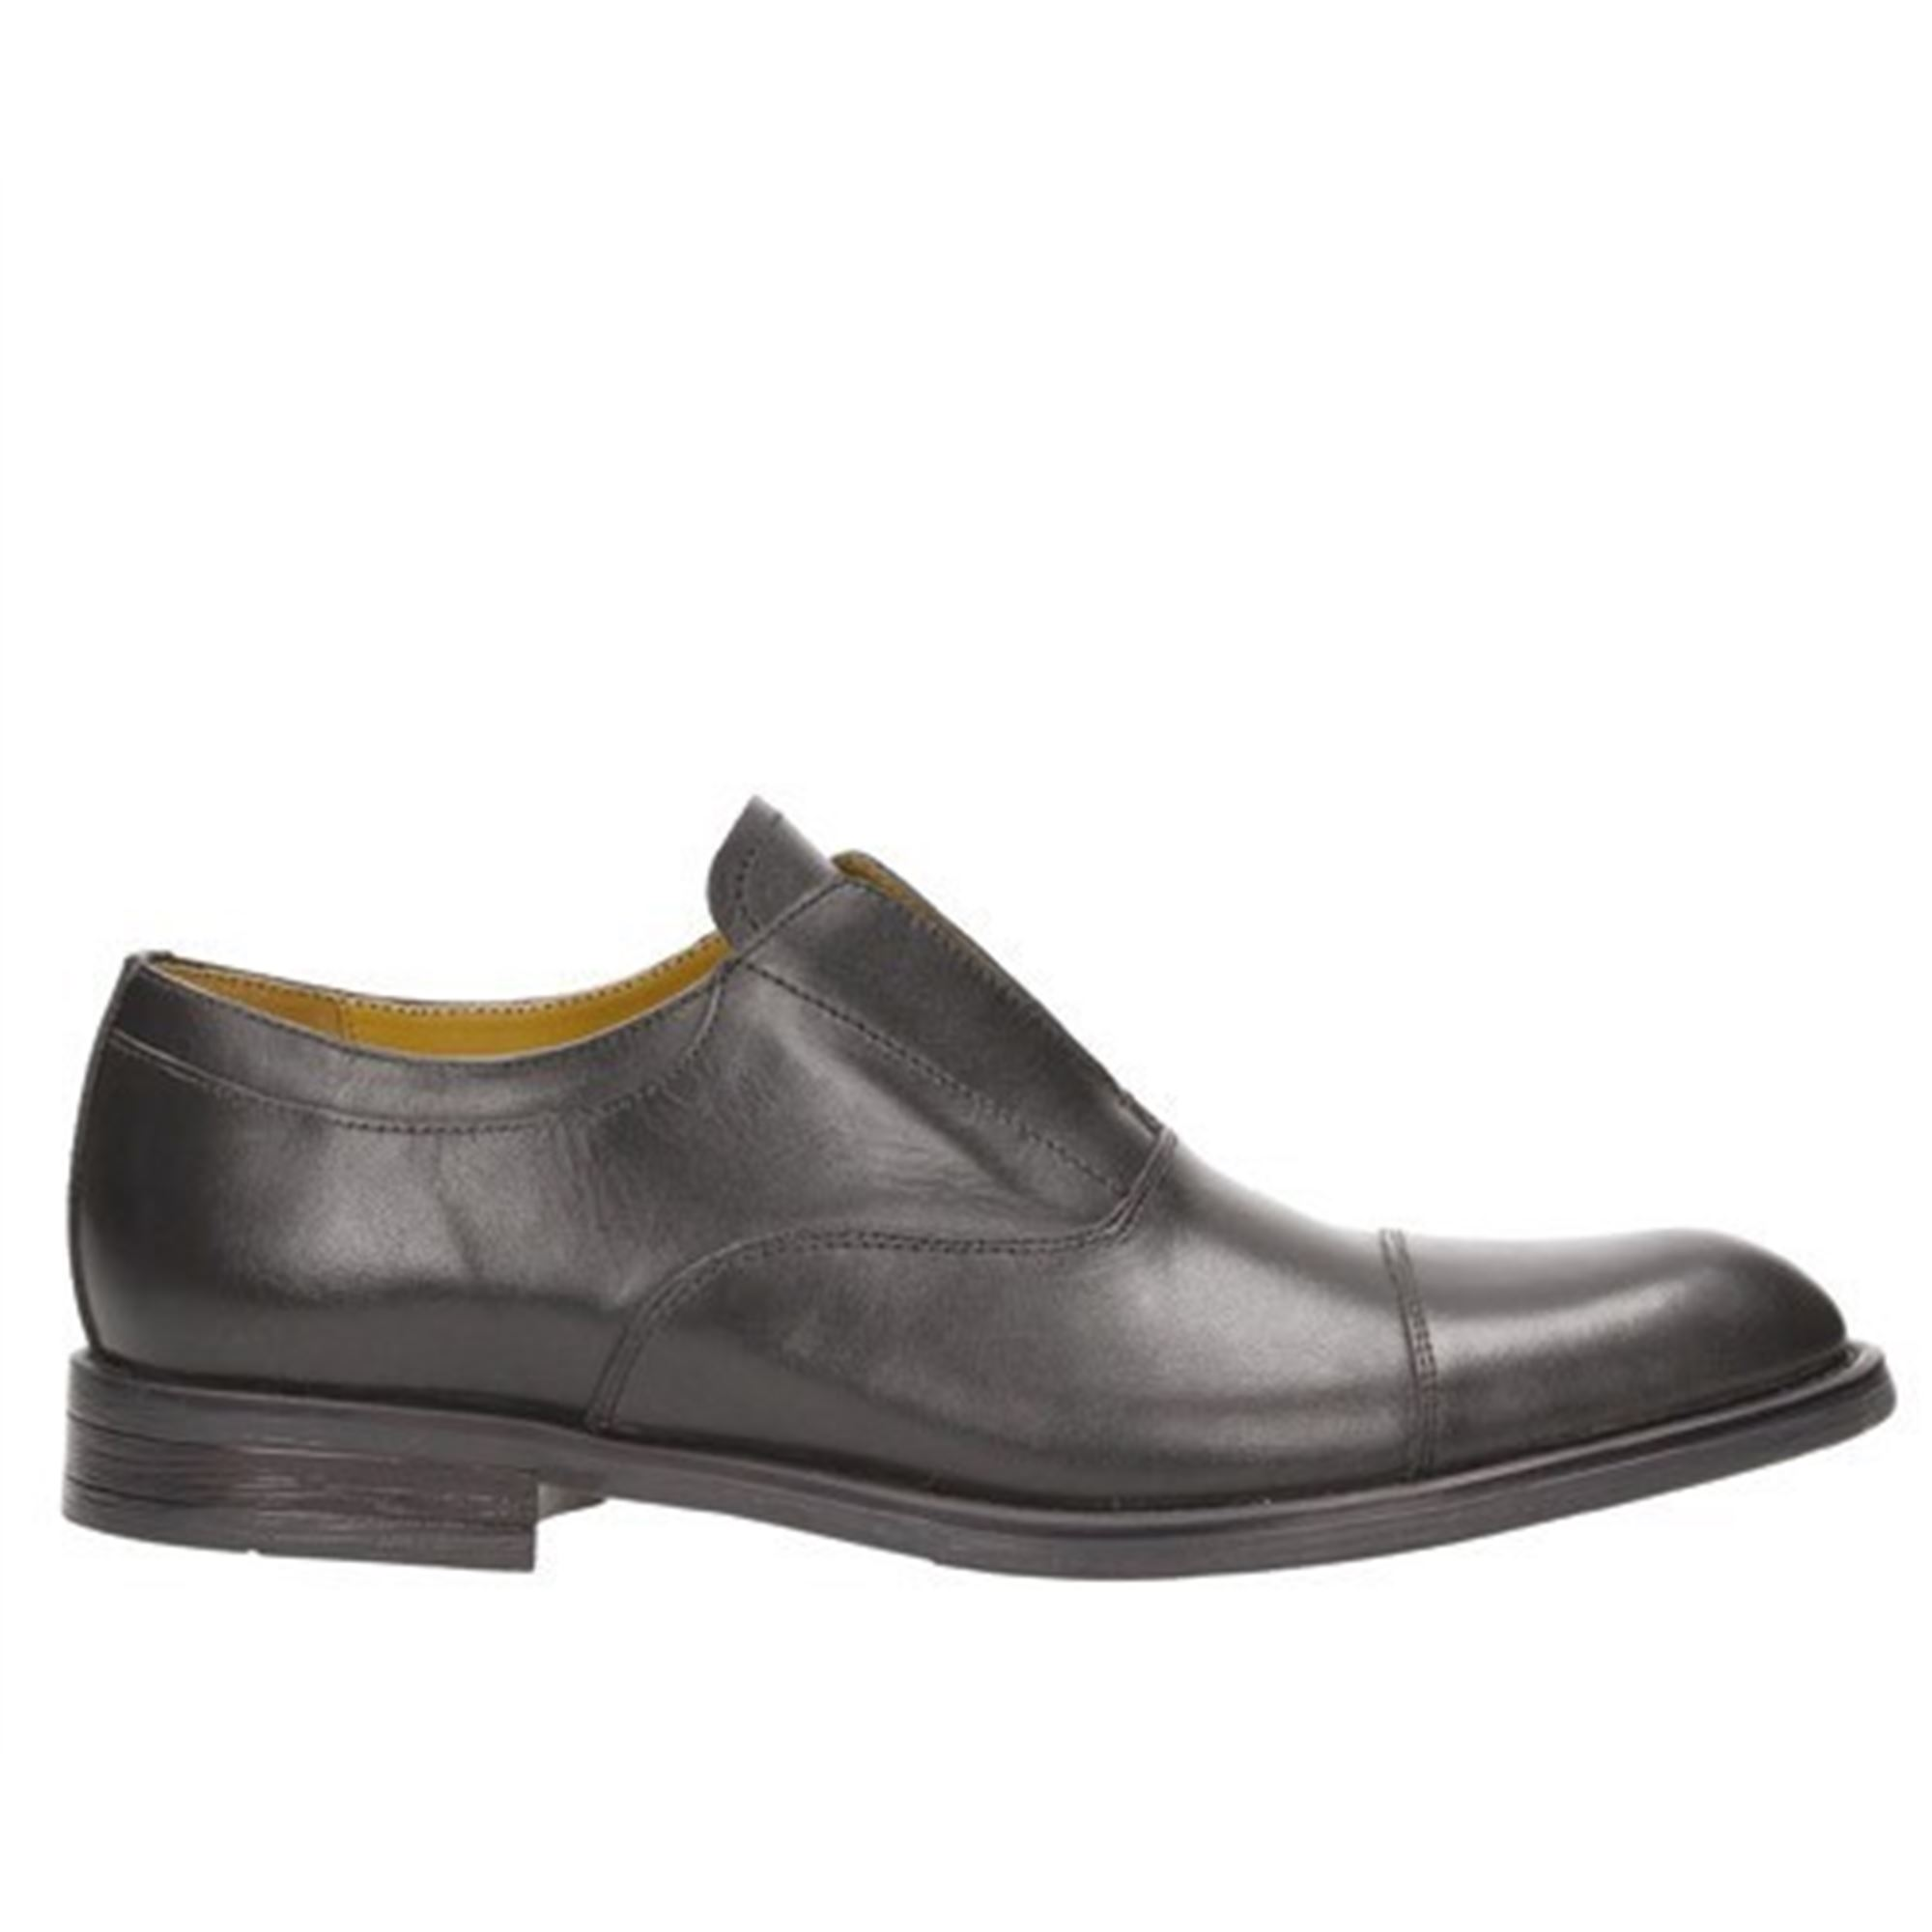 Tata Italia Shoes Man Derby Black 8-005-39/E19